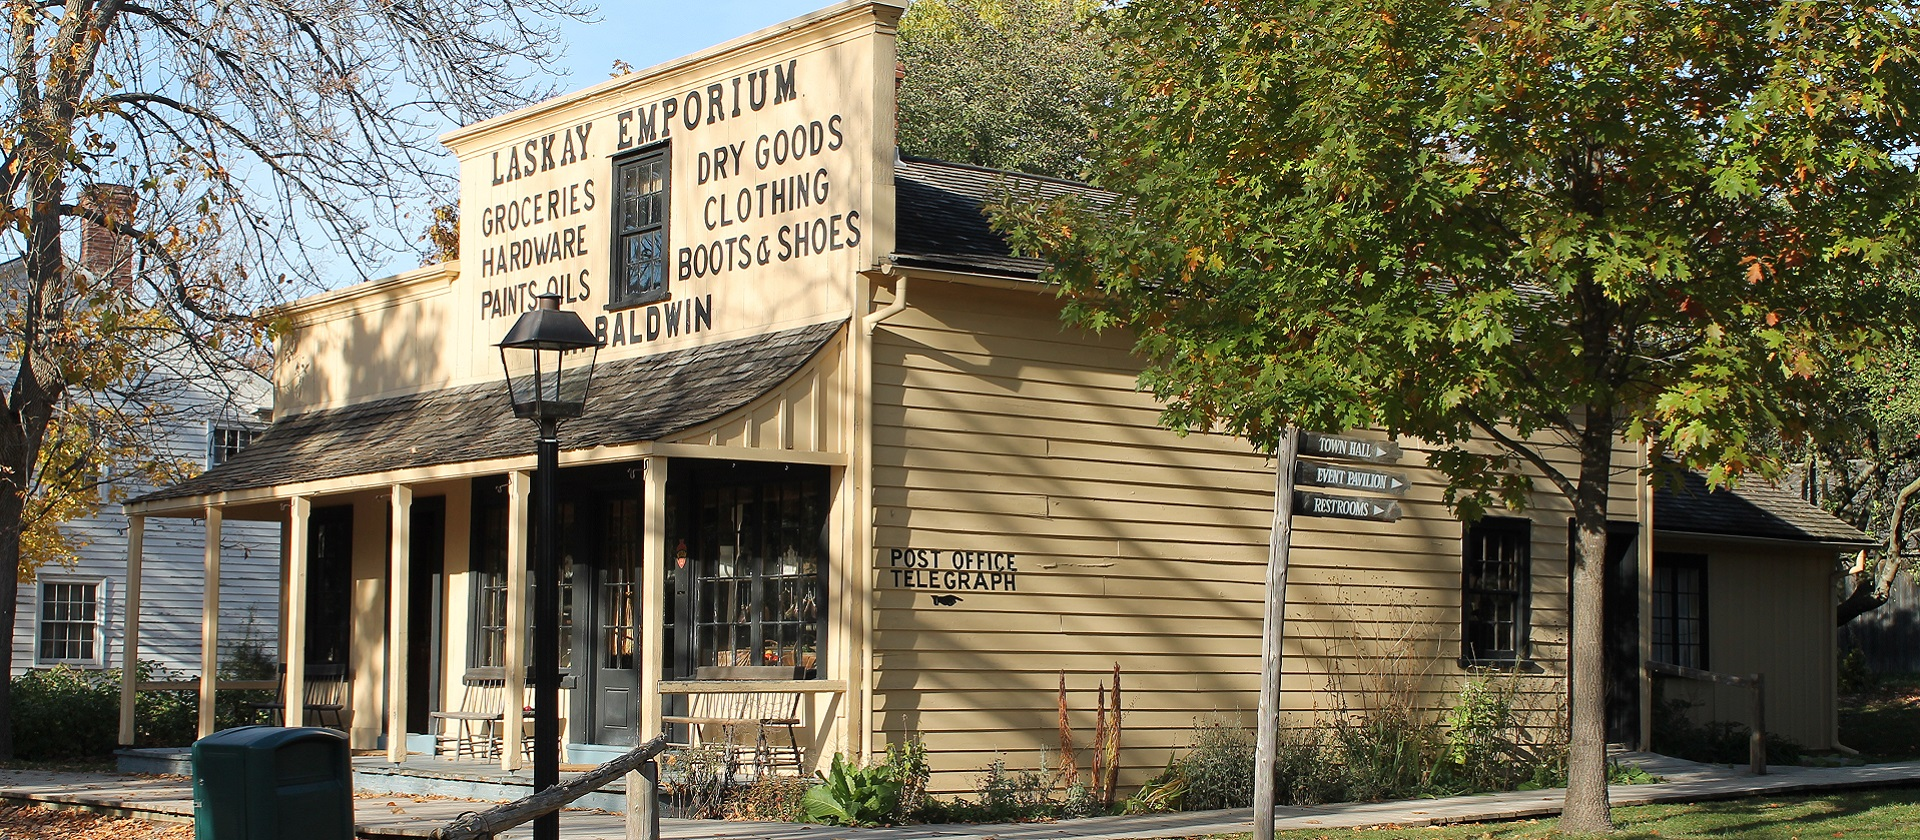 Laskay Emporium at Black Creek Pioneer Village